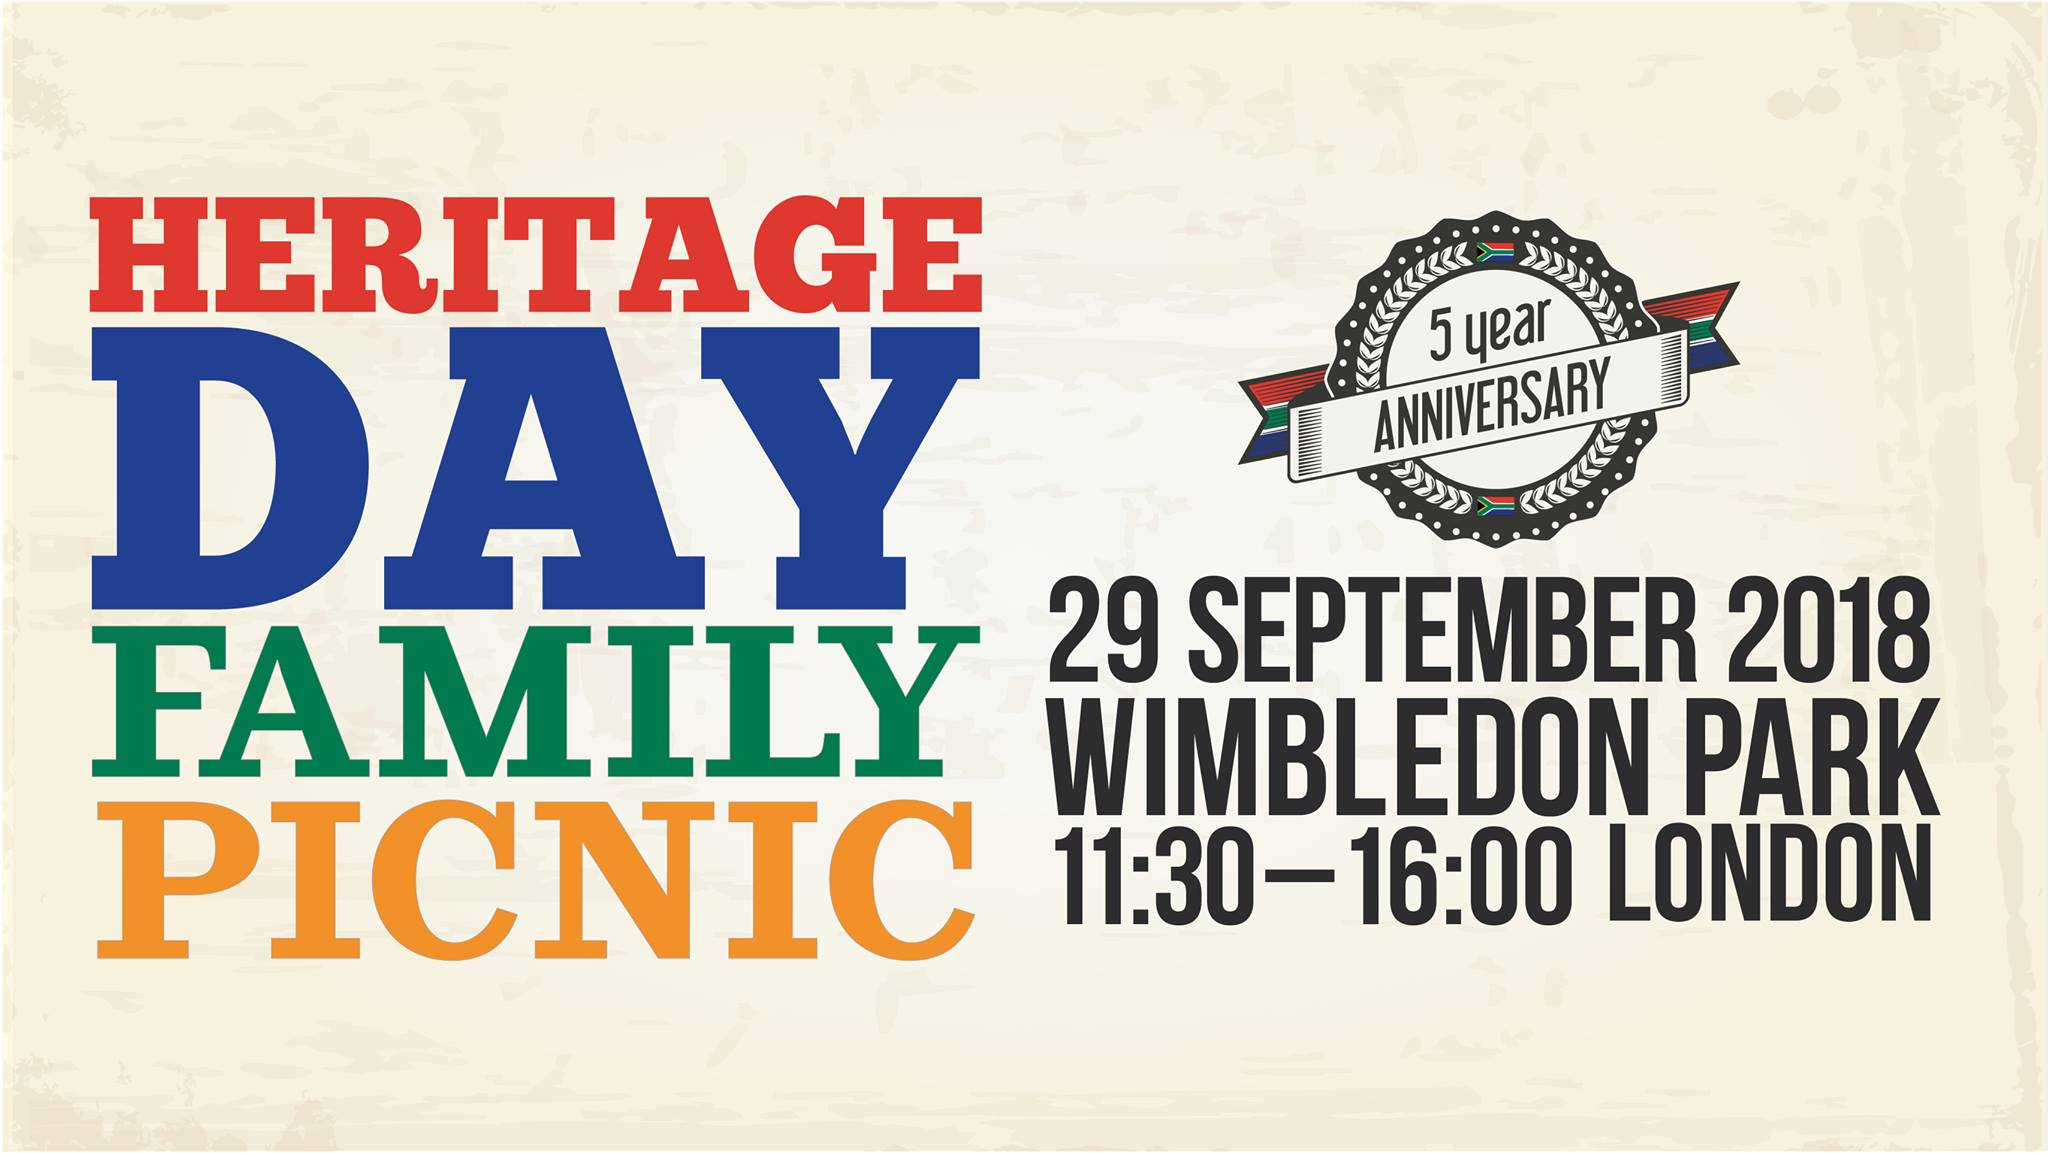 South African Heritage Day Family Picnic London